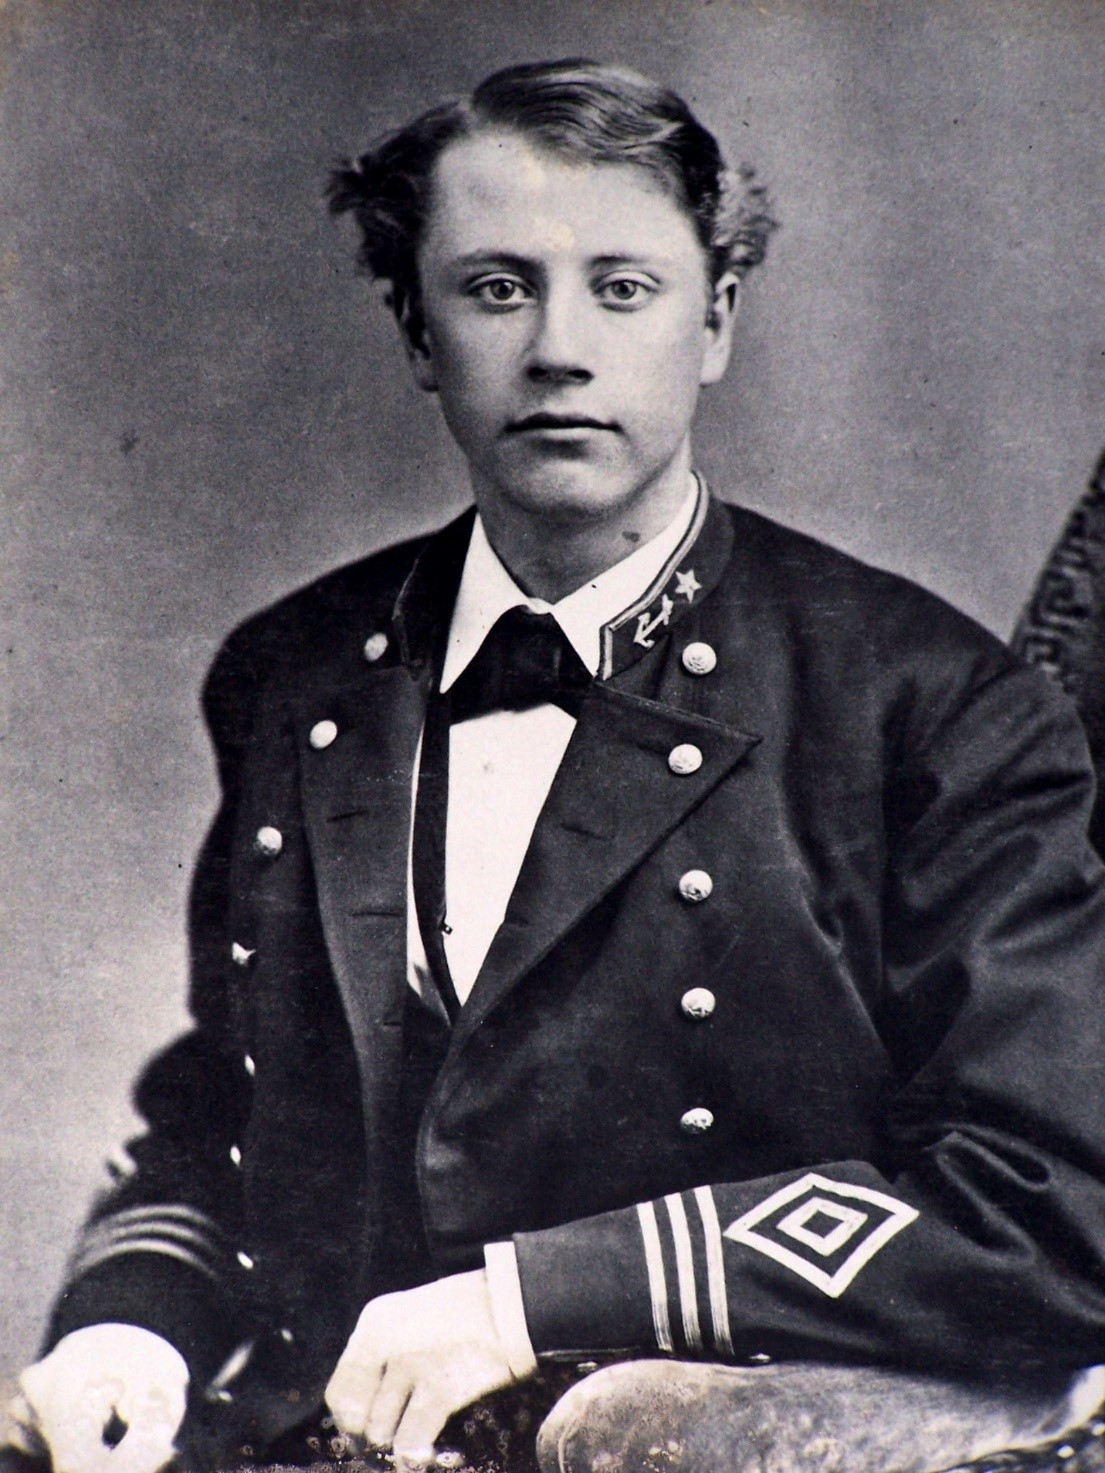 Charles William Deering, Cadet at the US Naval Academy 1873